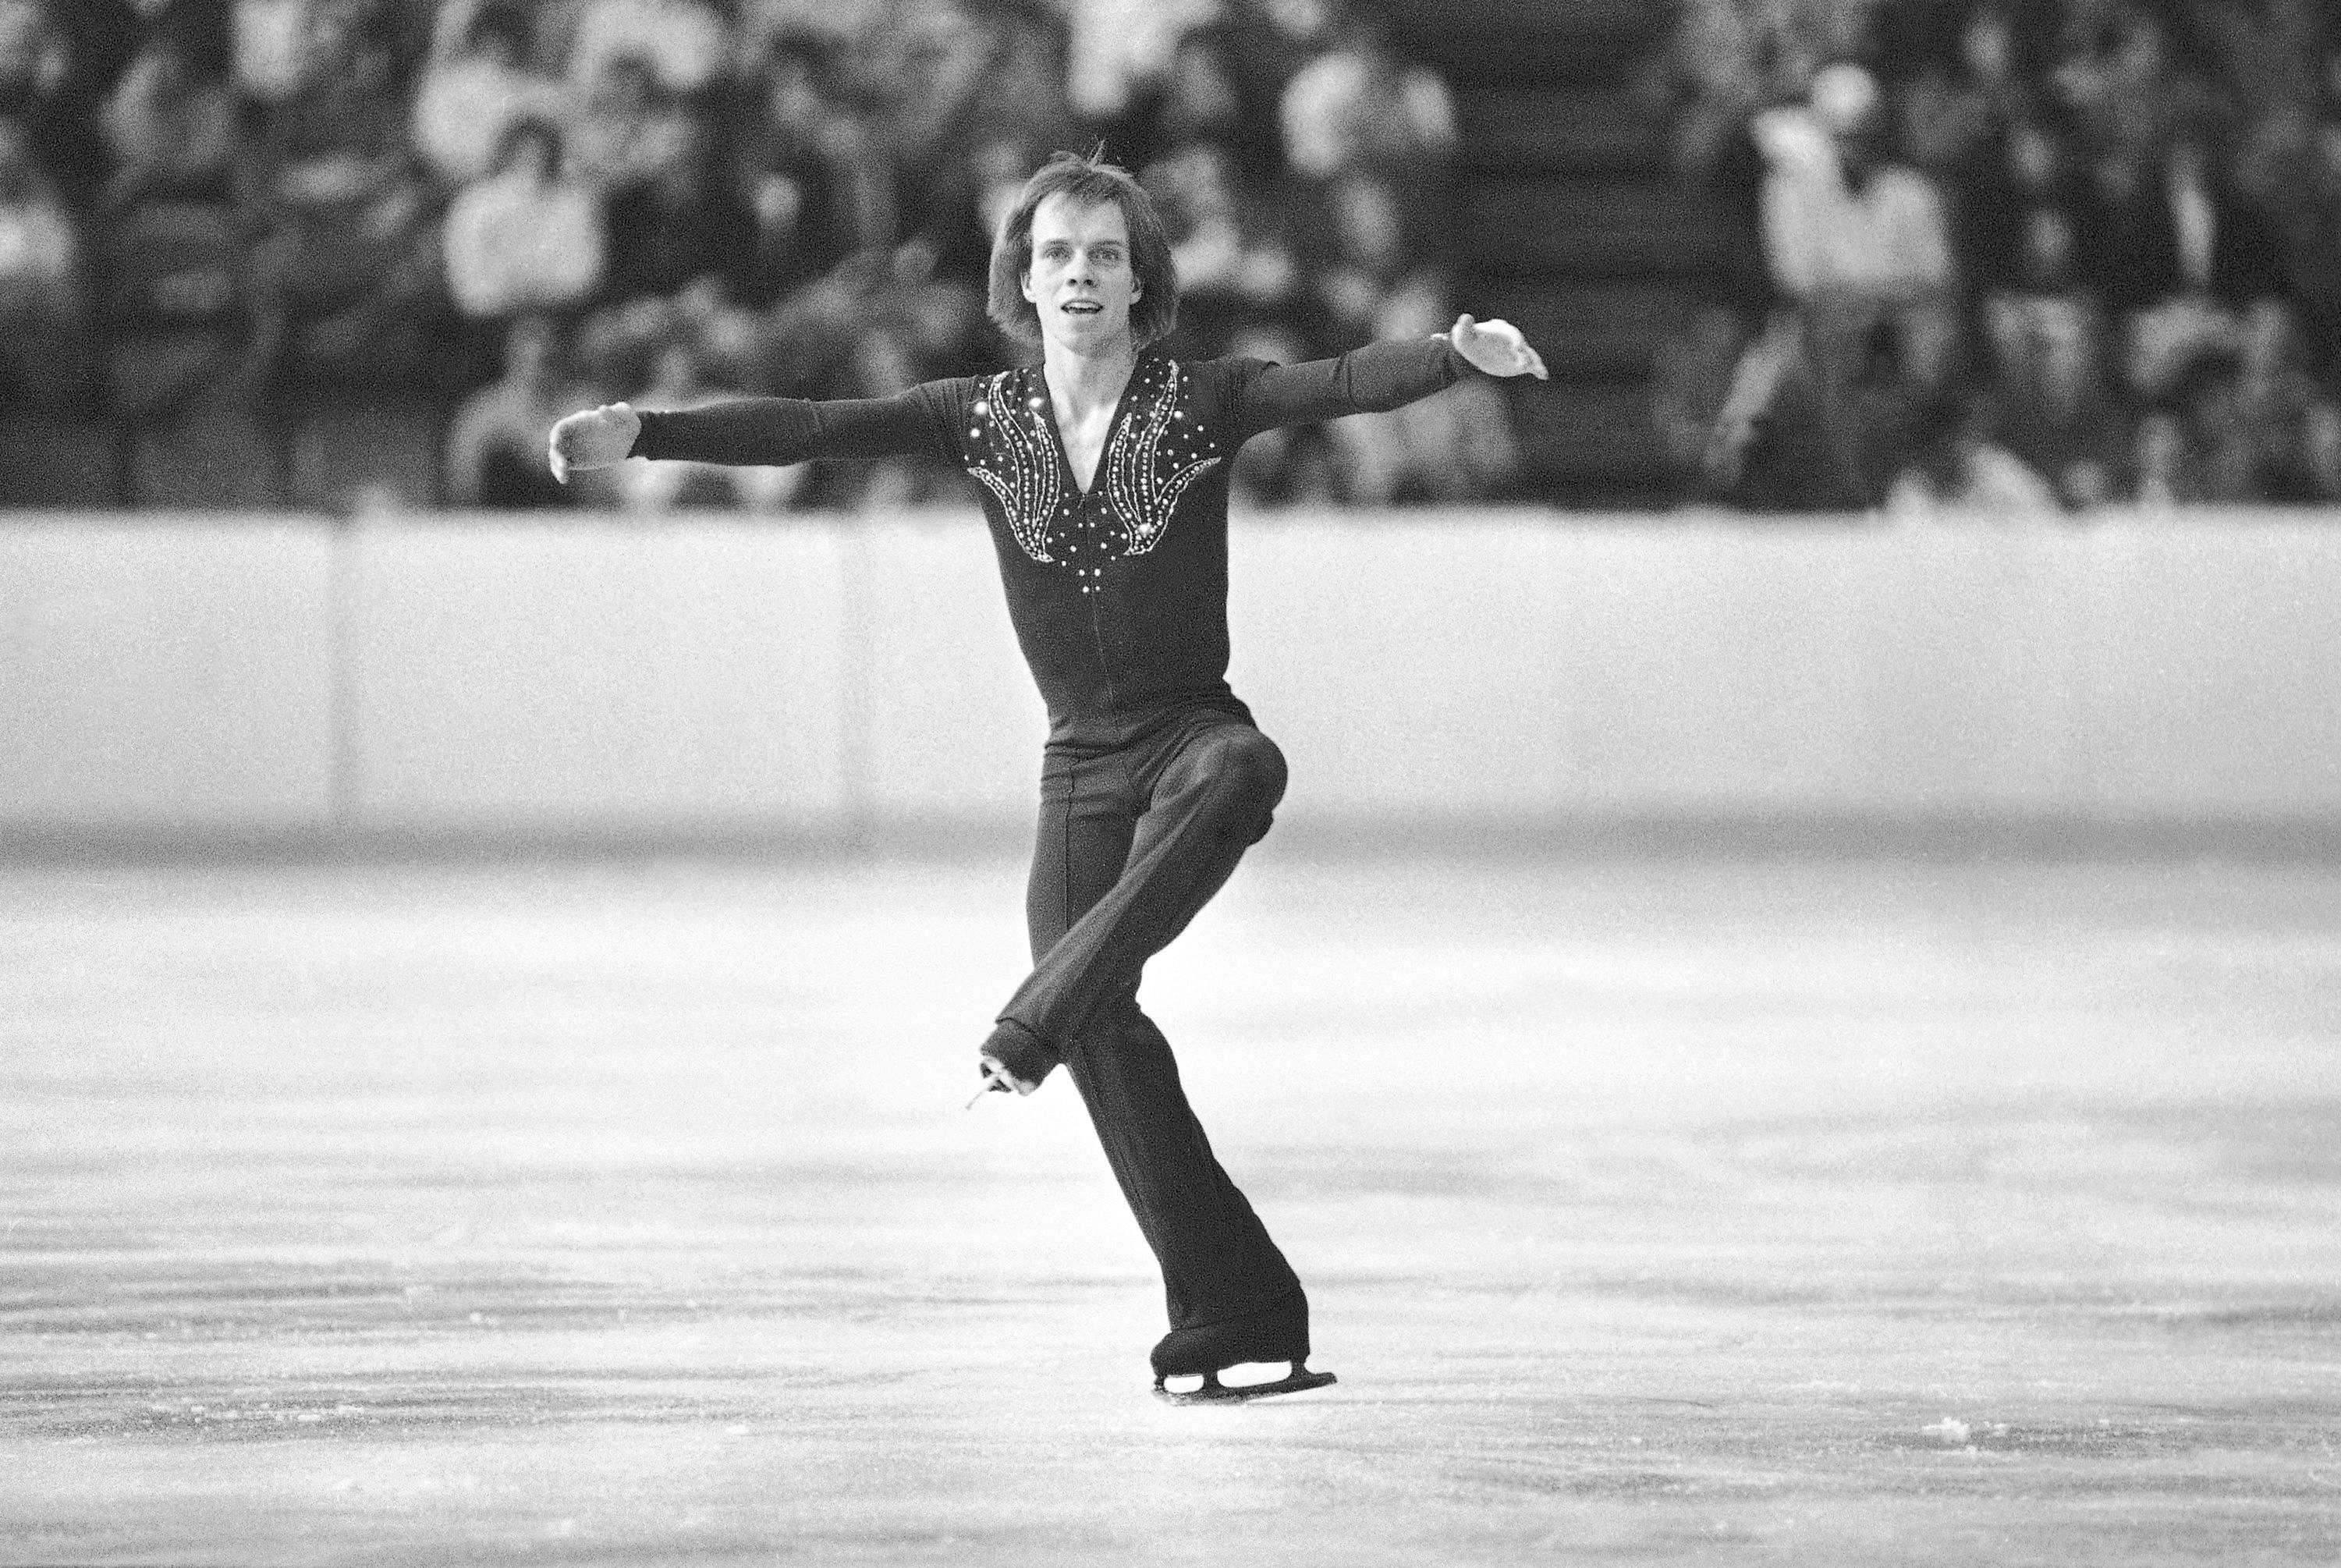 FILE - In this Feb. 19, 1980, file photo, Scott Hamilton, of Haverford, Pa., performs during his short program of the Olympic figure skating event in Lake Placid, N.Y. Hamilton gets goosebumps at the mention of Lake Placid. (AP Photo)